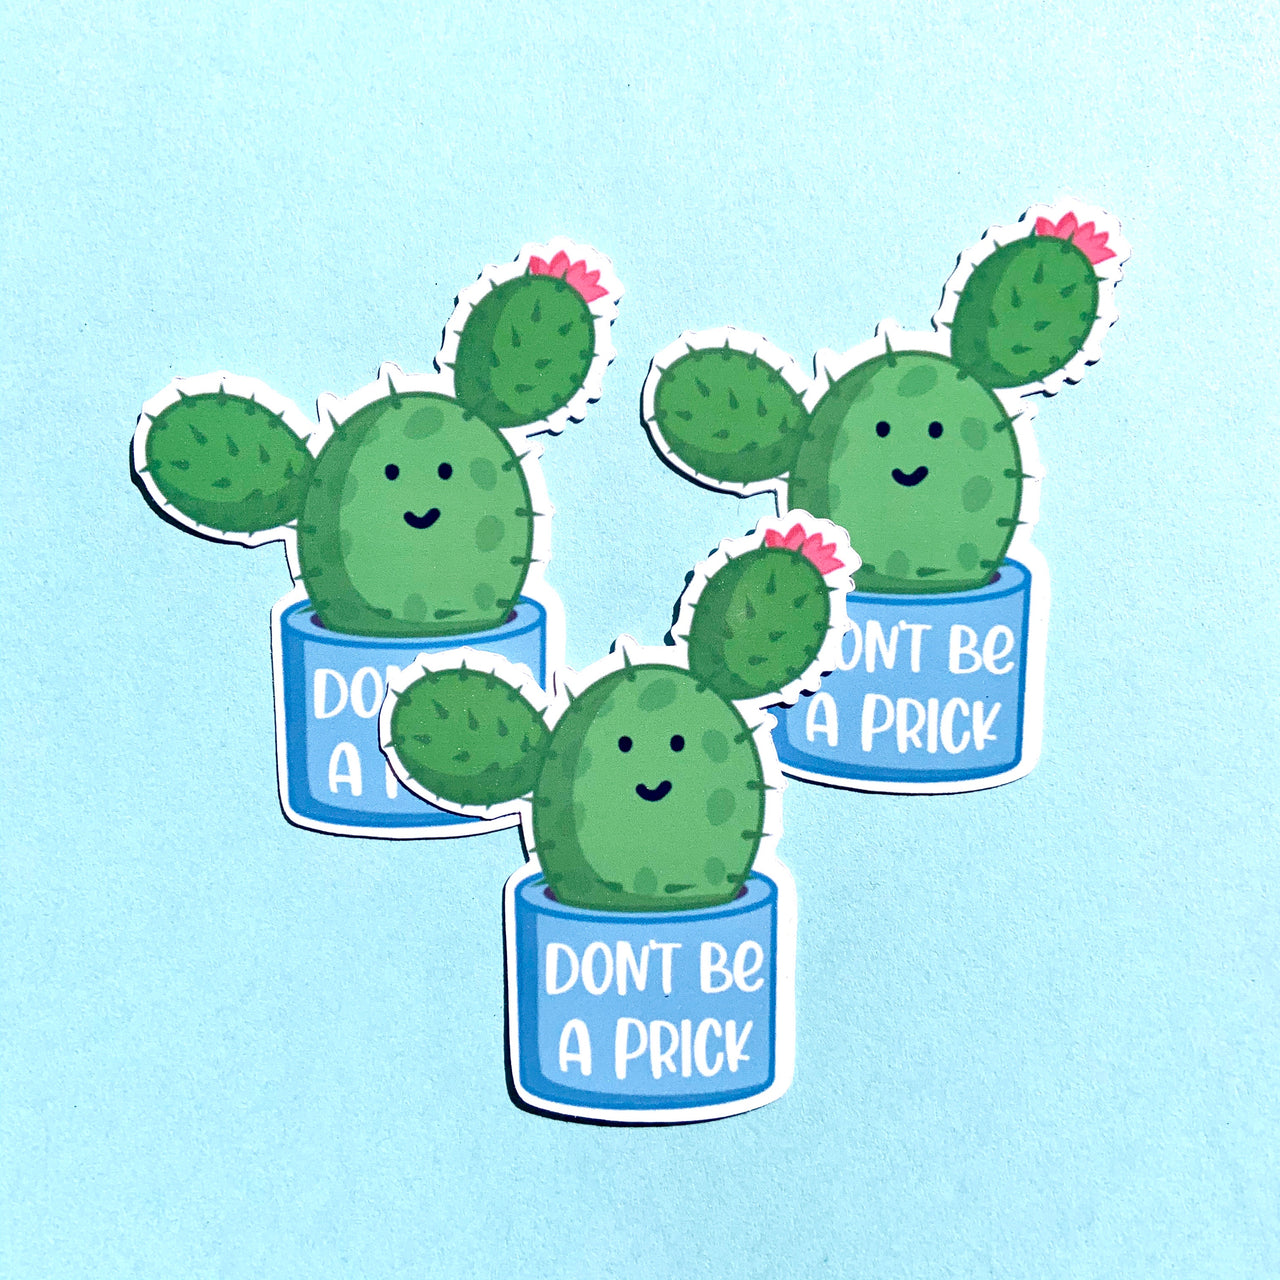 Don't be a prick cactus stickers (pack of 3 or 5)